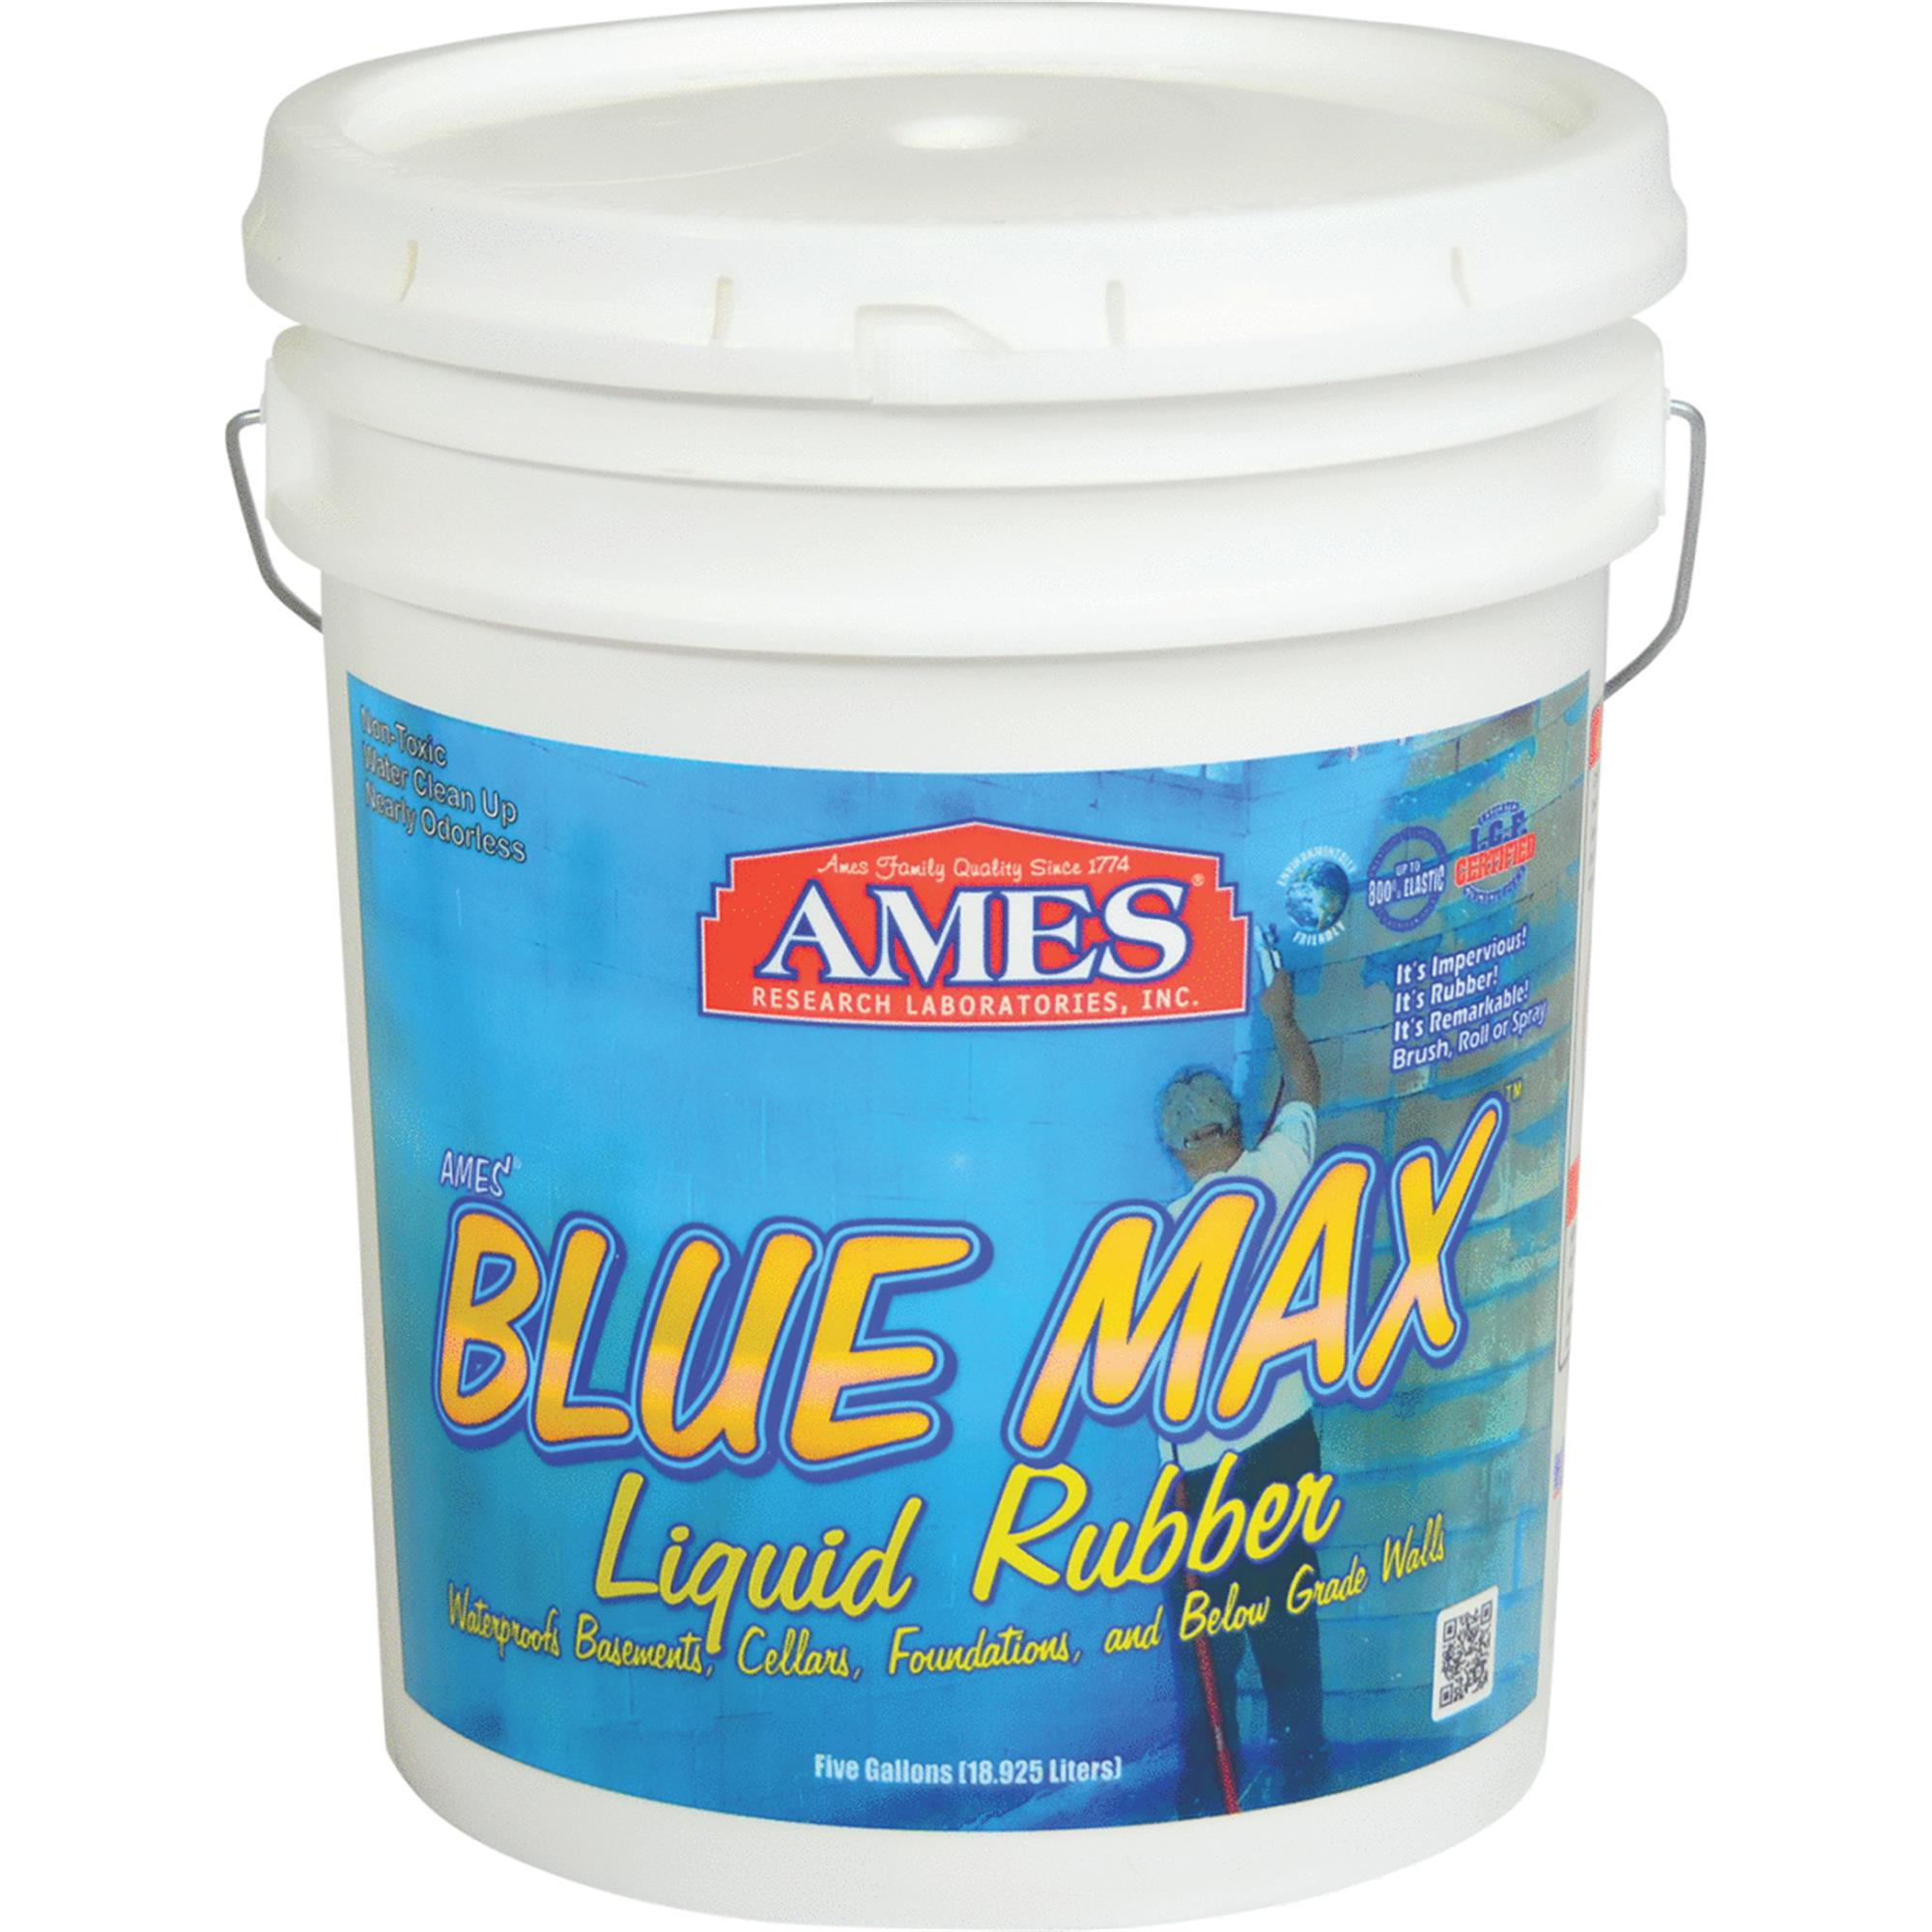 Ames Blue Max Liquid Rubber for Basements and Foundations 5 gallon